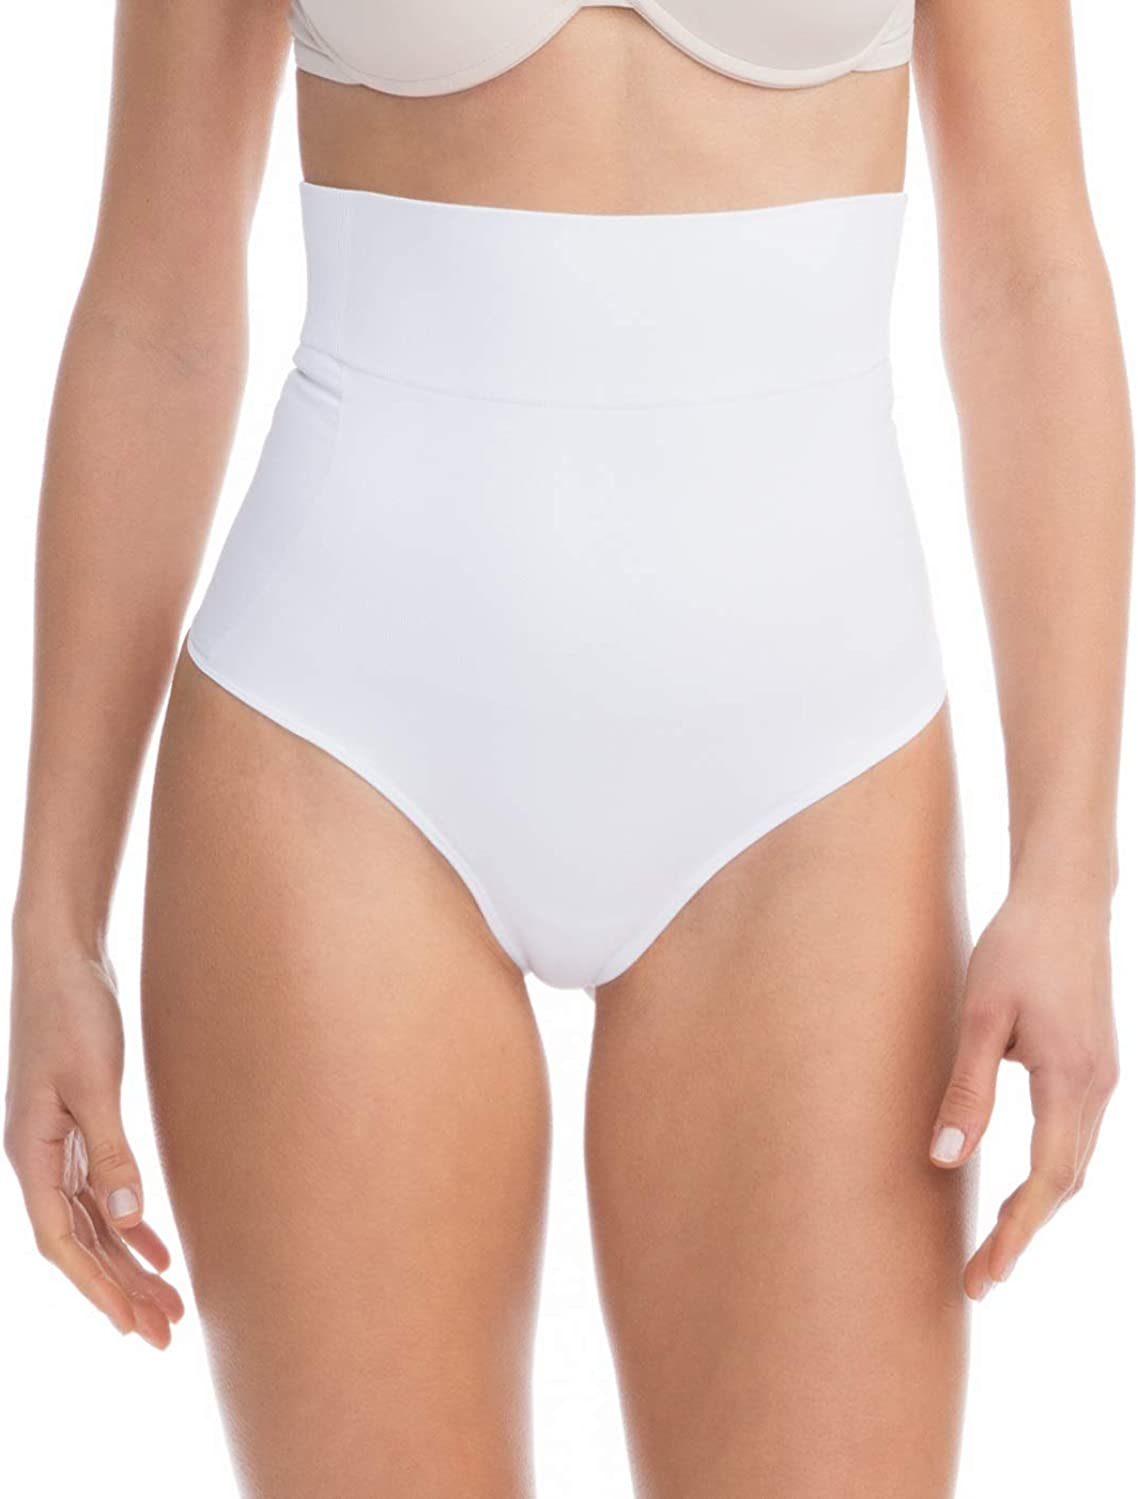 Farmacell Our shop OFFers the best service Shape 600 High-Waisted Max 54% OFF Shaping Control Flat with Thong